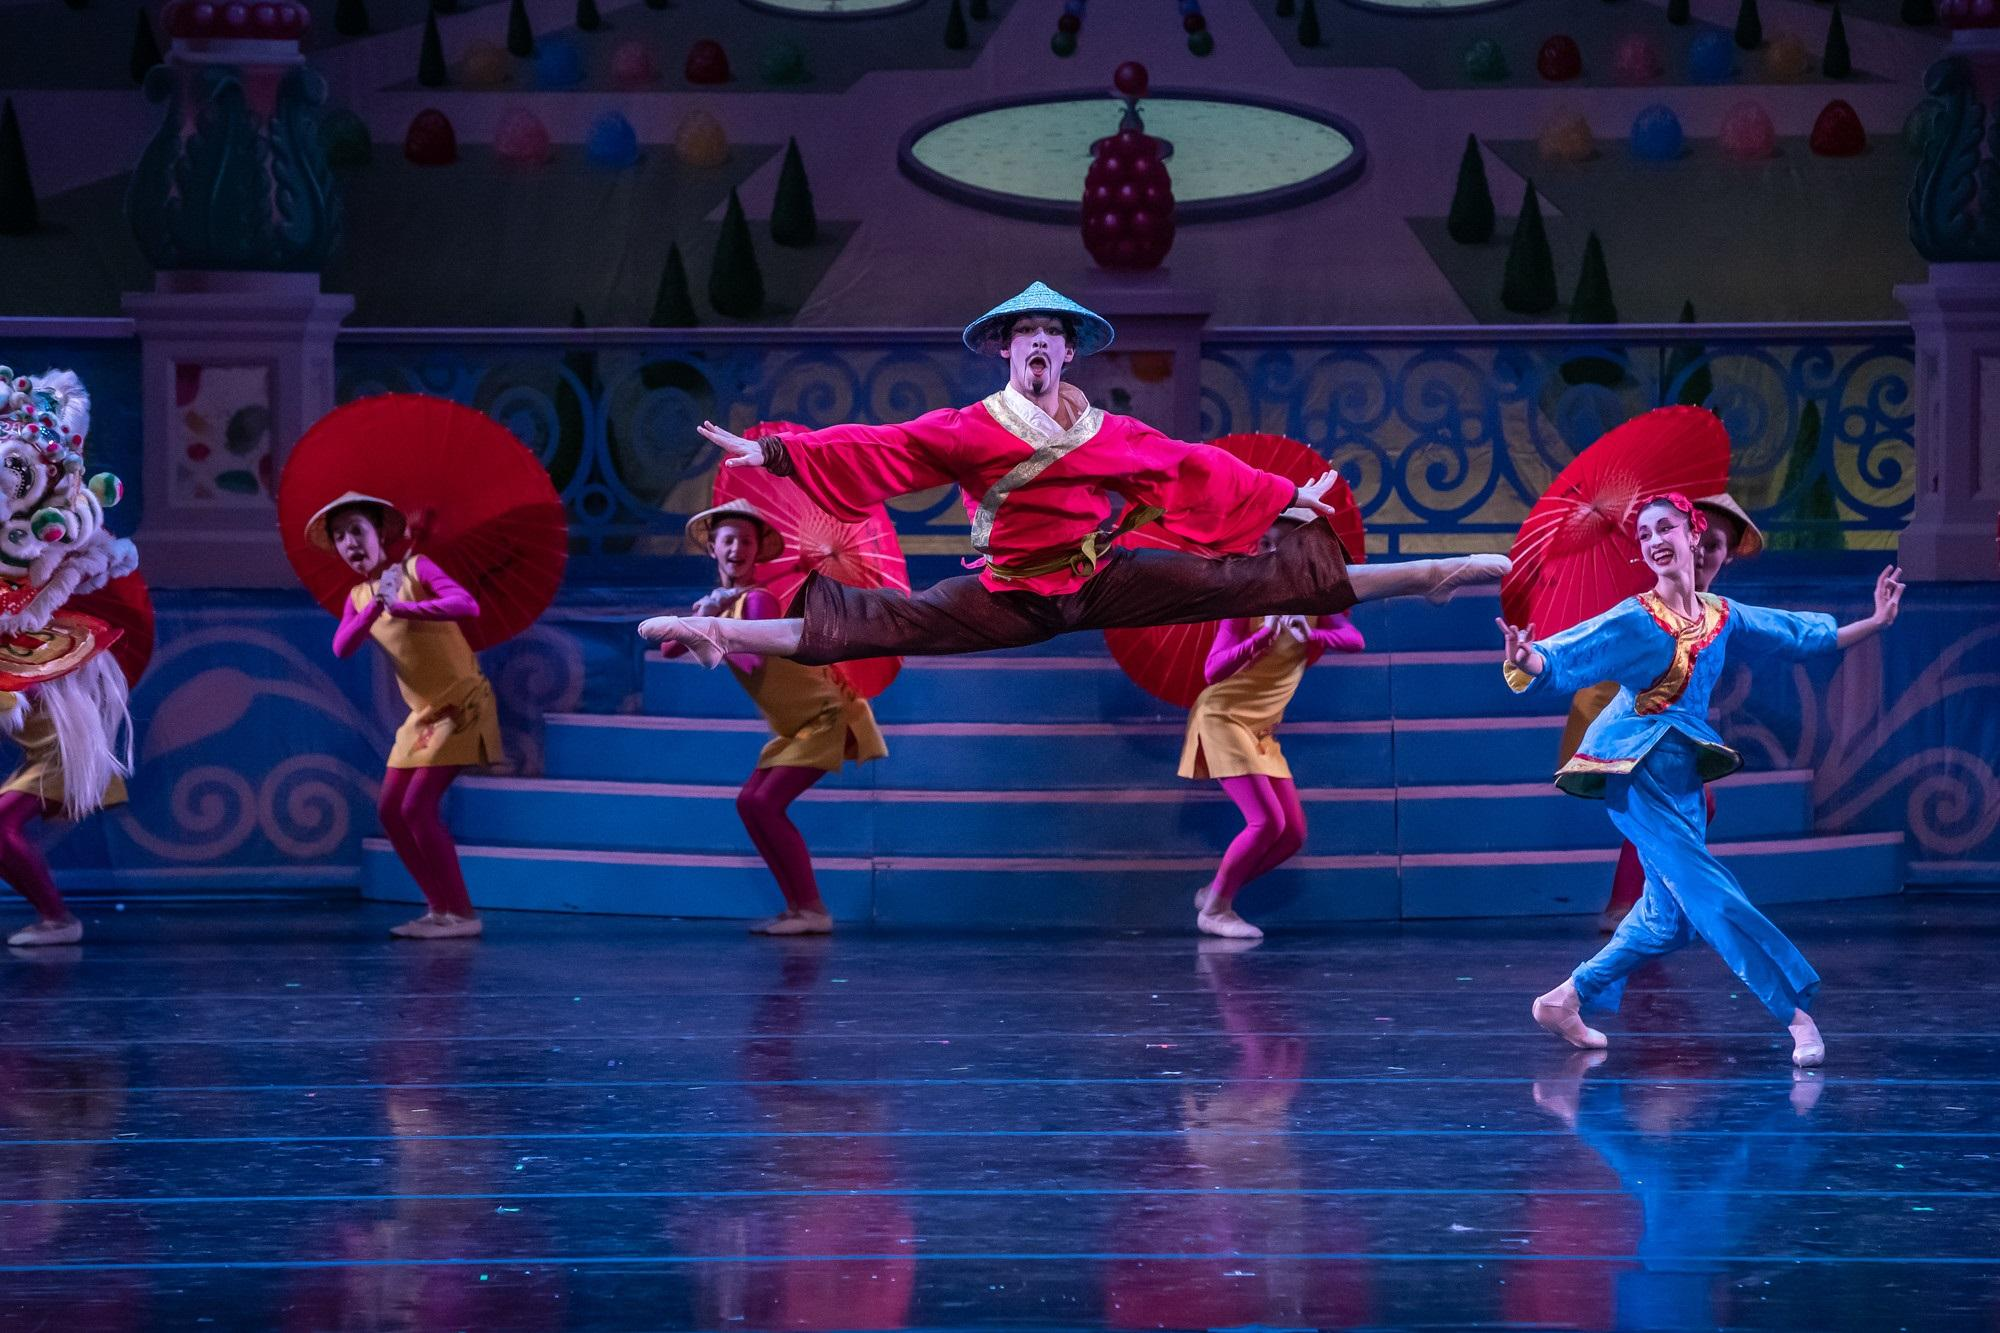 Kansas City Ballet Says It Will Phase Out Racist Stereotypes In The Nutcracker Kbia